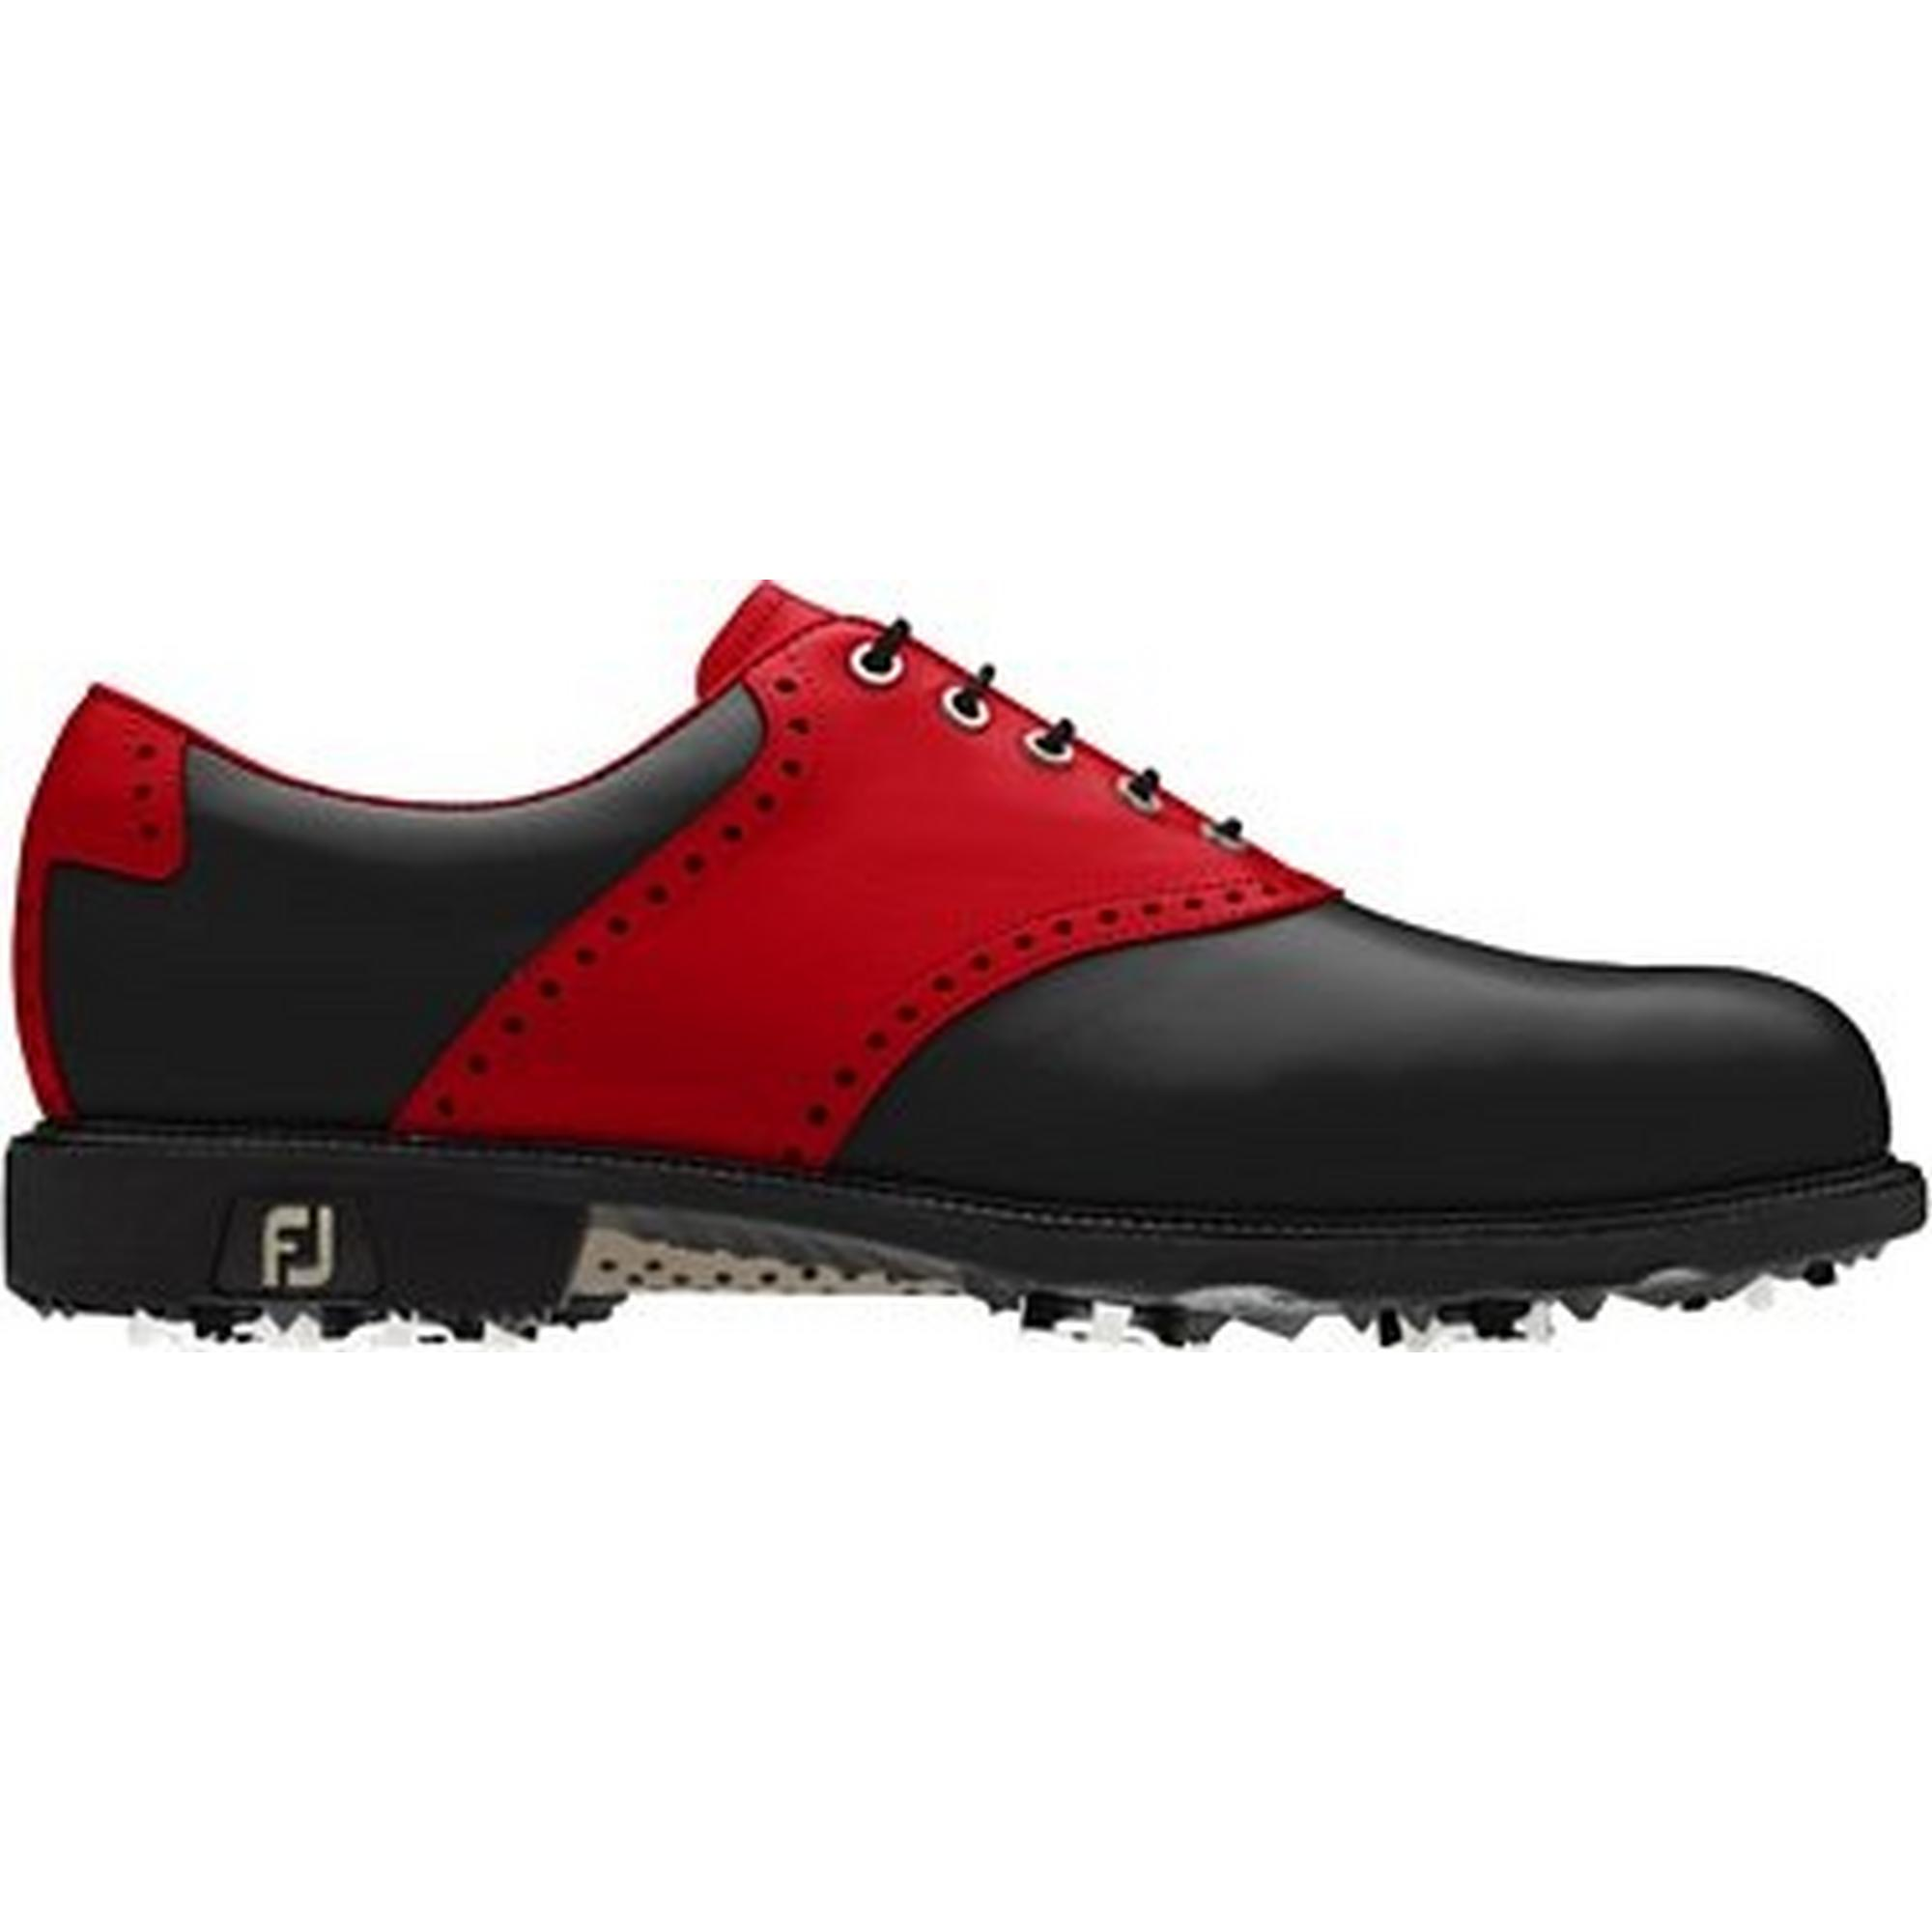 MyJoys Men's FJ ICON Traditional Golf Shoes - FJ# 52010